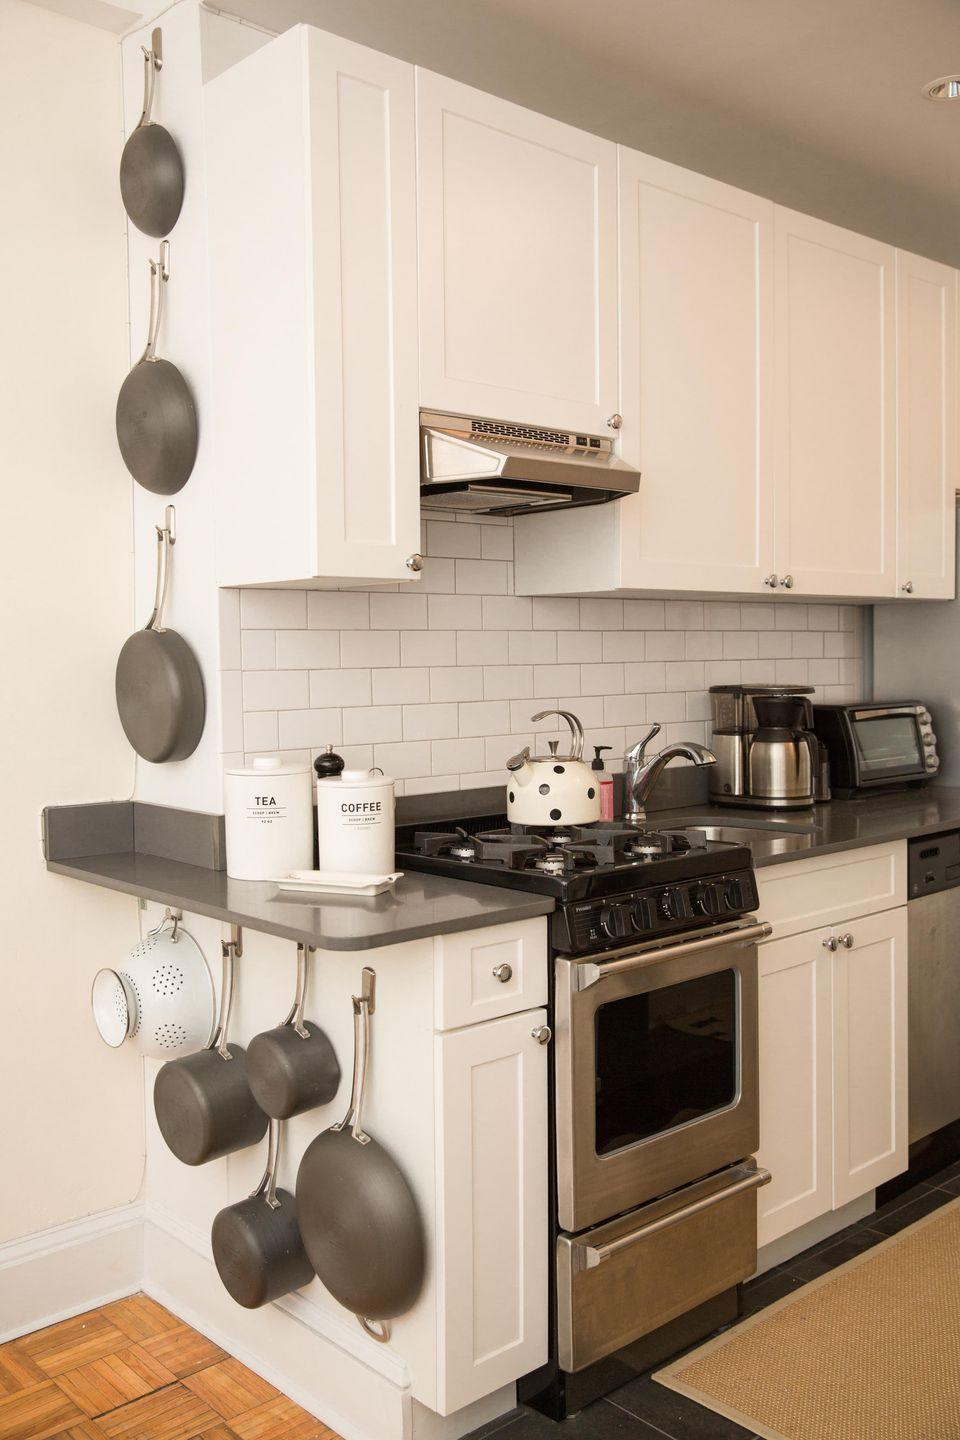 """<p>Instead of taking up valuable cabinet space with these clunky items, use Command Hooks to hang them on an unused wall, <a href=""""https://www.goodhousekeeping.com/home/organizing/a43607/professional-organizer-kitchen-makeover/"""" rel=""""nofollow noopener"""" target=""""_blank"""" data-ylk=""""slk:like this pro organizer did"""" class=""""link rapid-noclick-resp"""">like this pro organizer did</a>. S<span class=""""redactor-invisible-space"""">tart by hanging the biggest items first, then incorporate the medium-sized ones and finish with the smallest items. </span></p><p><span class=""""redactor-invisible-space""""><a class=""""link rapid-noclick-resp"""" href=""""https://www.amazon.com/Command-Utility-Medium-6-Hooks-17001-6ES/dp/B000FSORW4?tag=syn-yahoo-20&ascsubtag=%5Bartid%7C2164.g.35037072%5Bsrc%7Cyahoo-us"""" rel=""""nofollow noopener"""" target=""""_blank"""" data-ylk=""""slk:SHOP COMMAND HOOKS"""">SHOP COMMAND HOOKS</a><br></span></p>"""